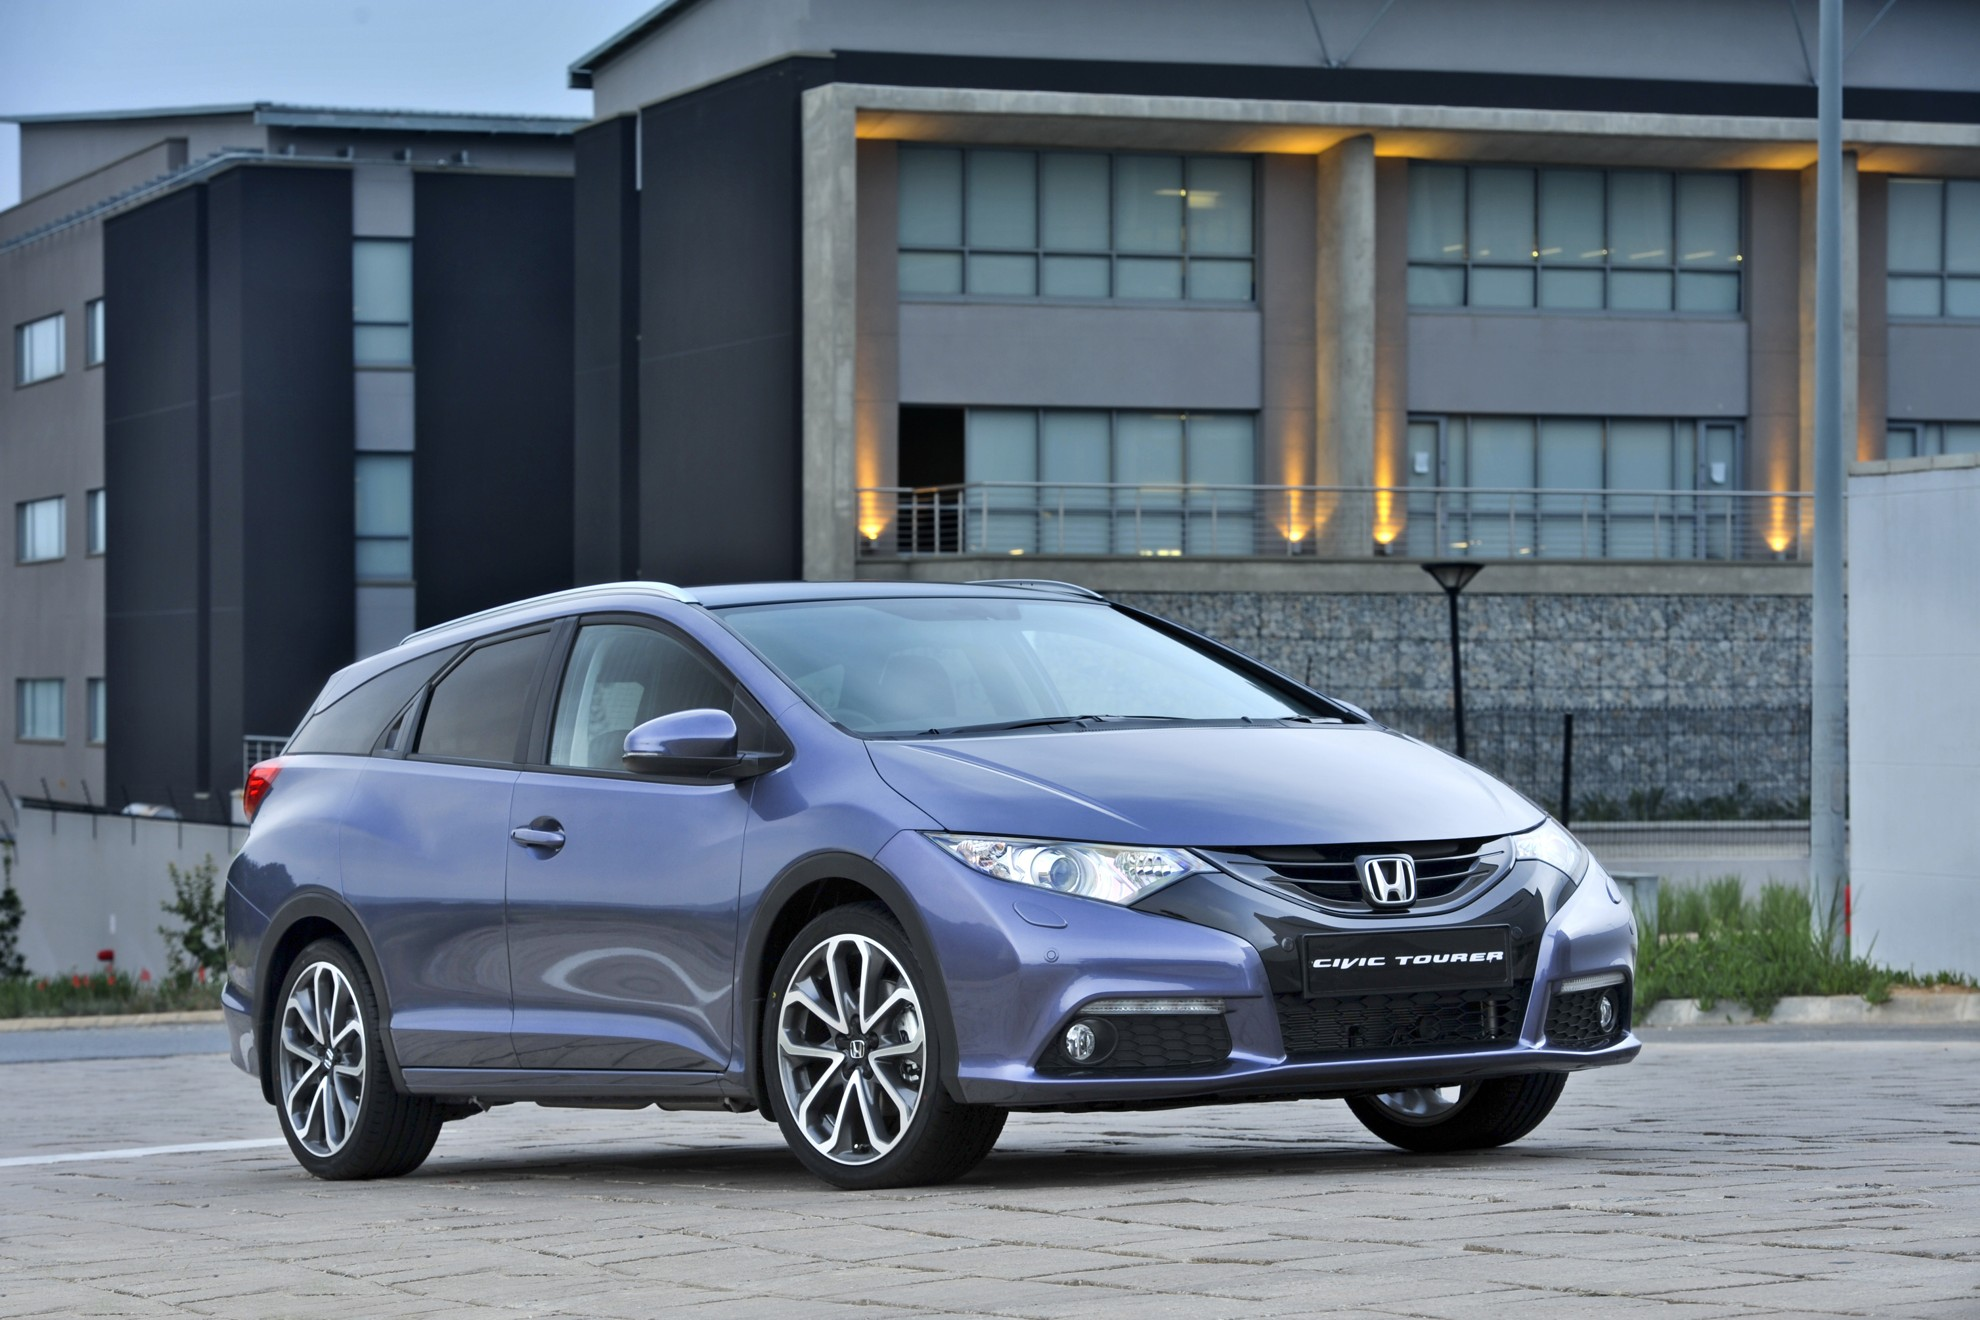 Honda Civic Tourer >> New Honda Civic Tourer 2014